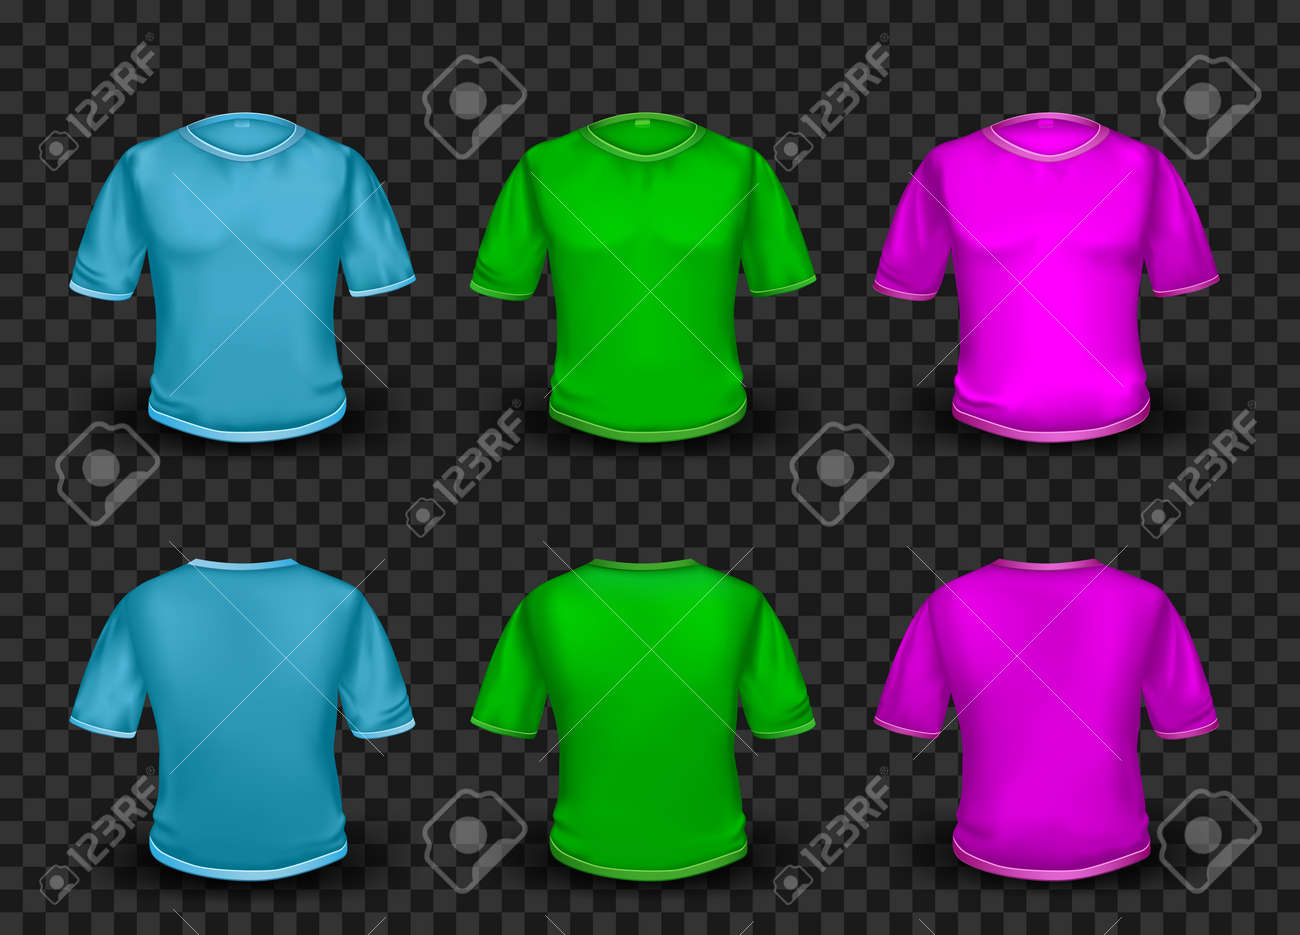 Colorful Empty T Shirt Template On Transparent Background Royalty